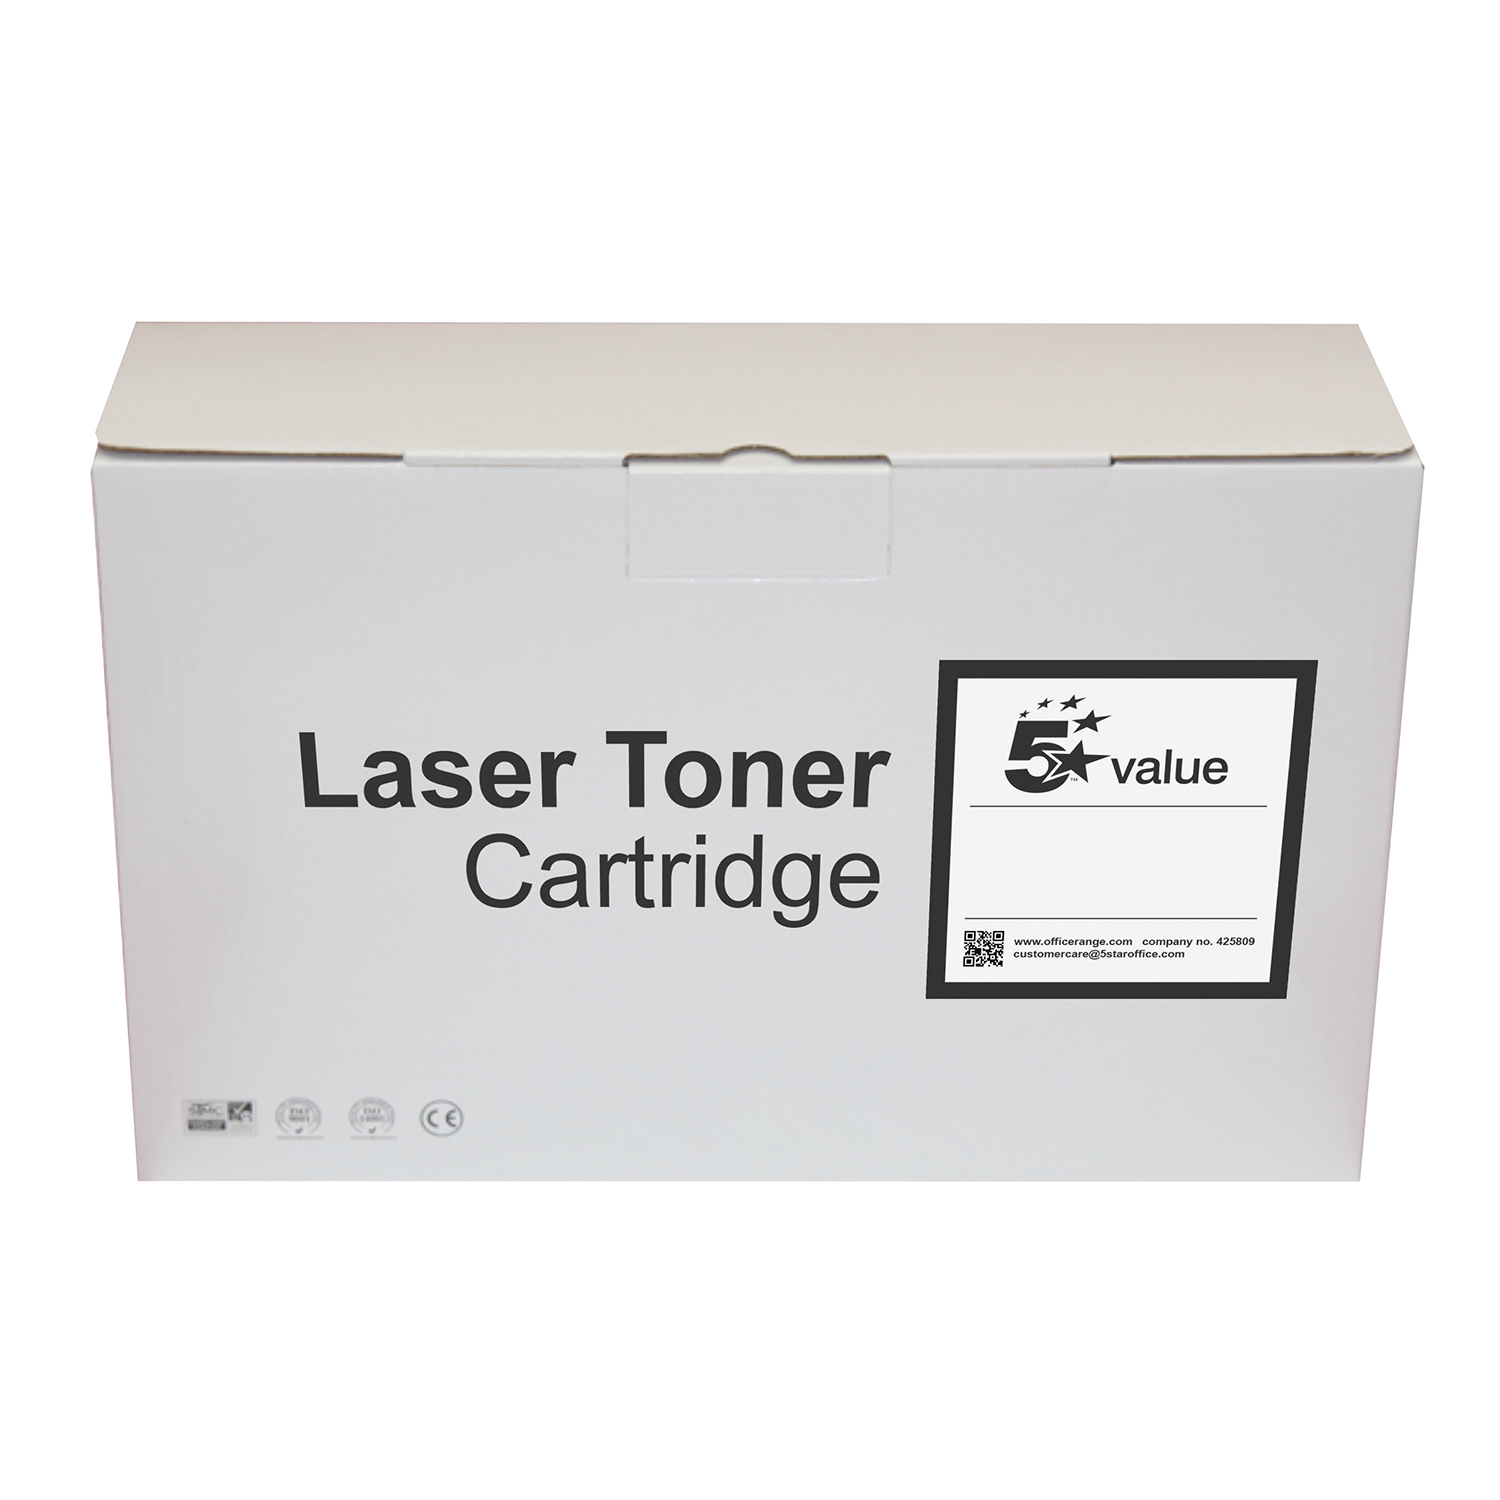 Laser Toner Cartridges 5 Star Value HP 53X Toner Cartridge Black Q7553X